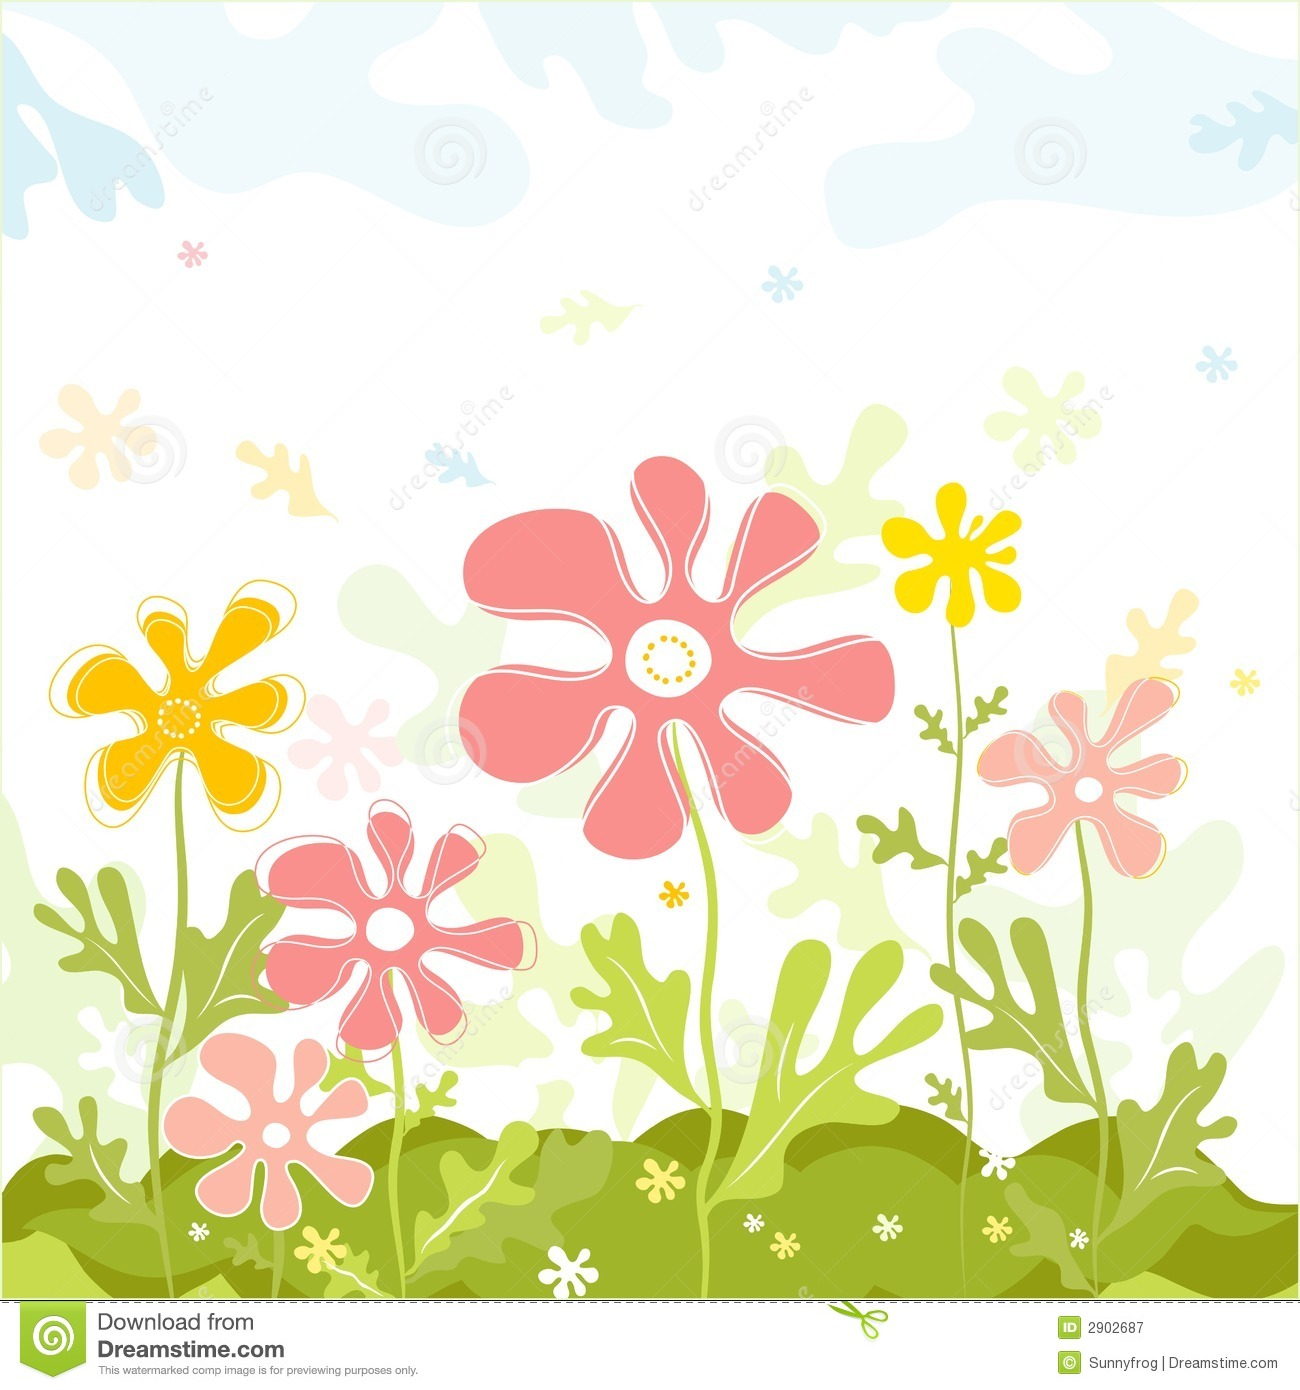 Spring vector flowers stock vector illustration of pink 2902687 spring vector flowers mightylinksfo Gallery